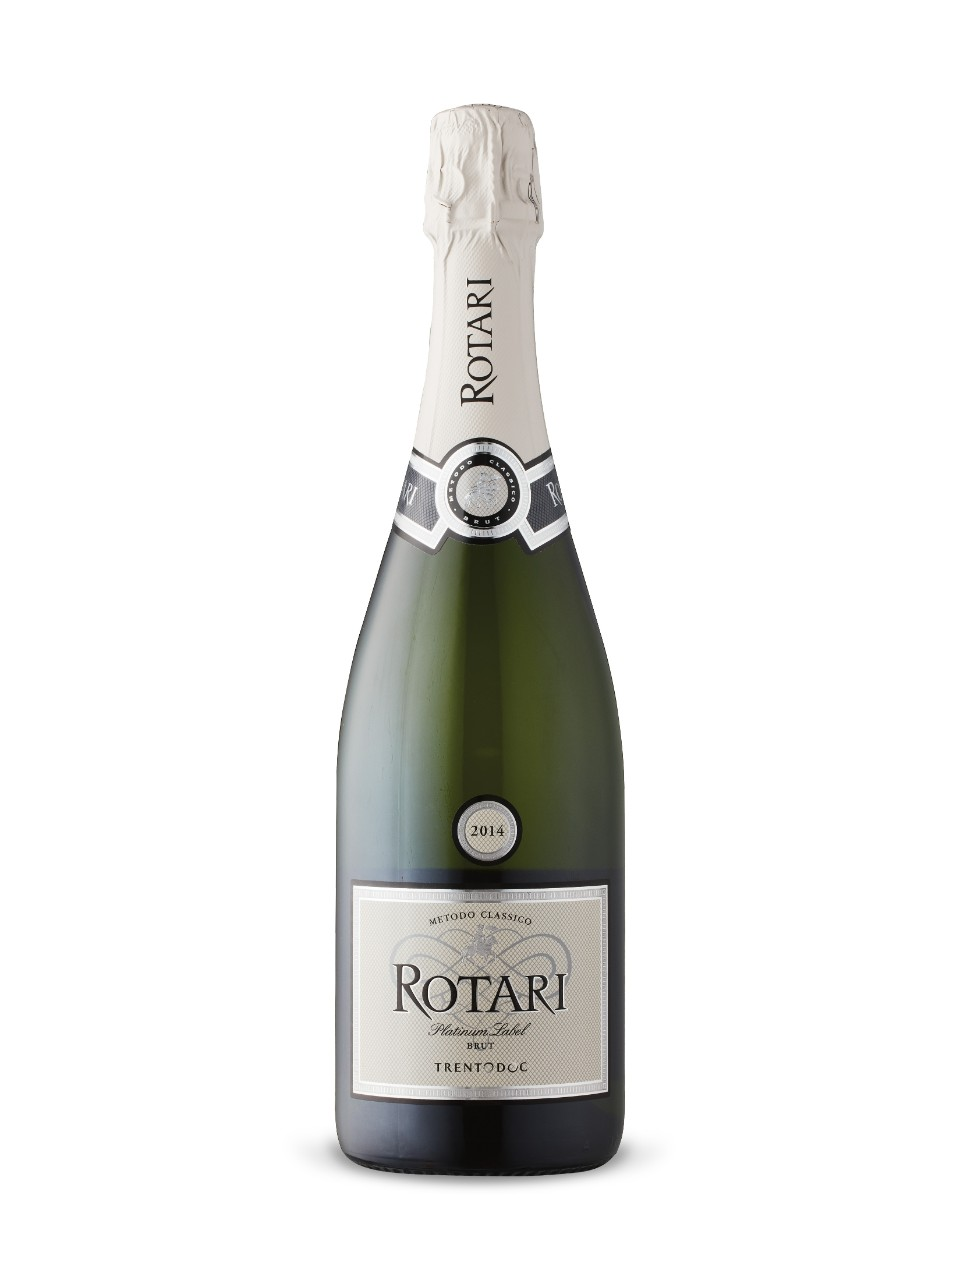 Rotari Platinum Label Brut Trento 2014 from LCBO